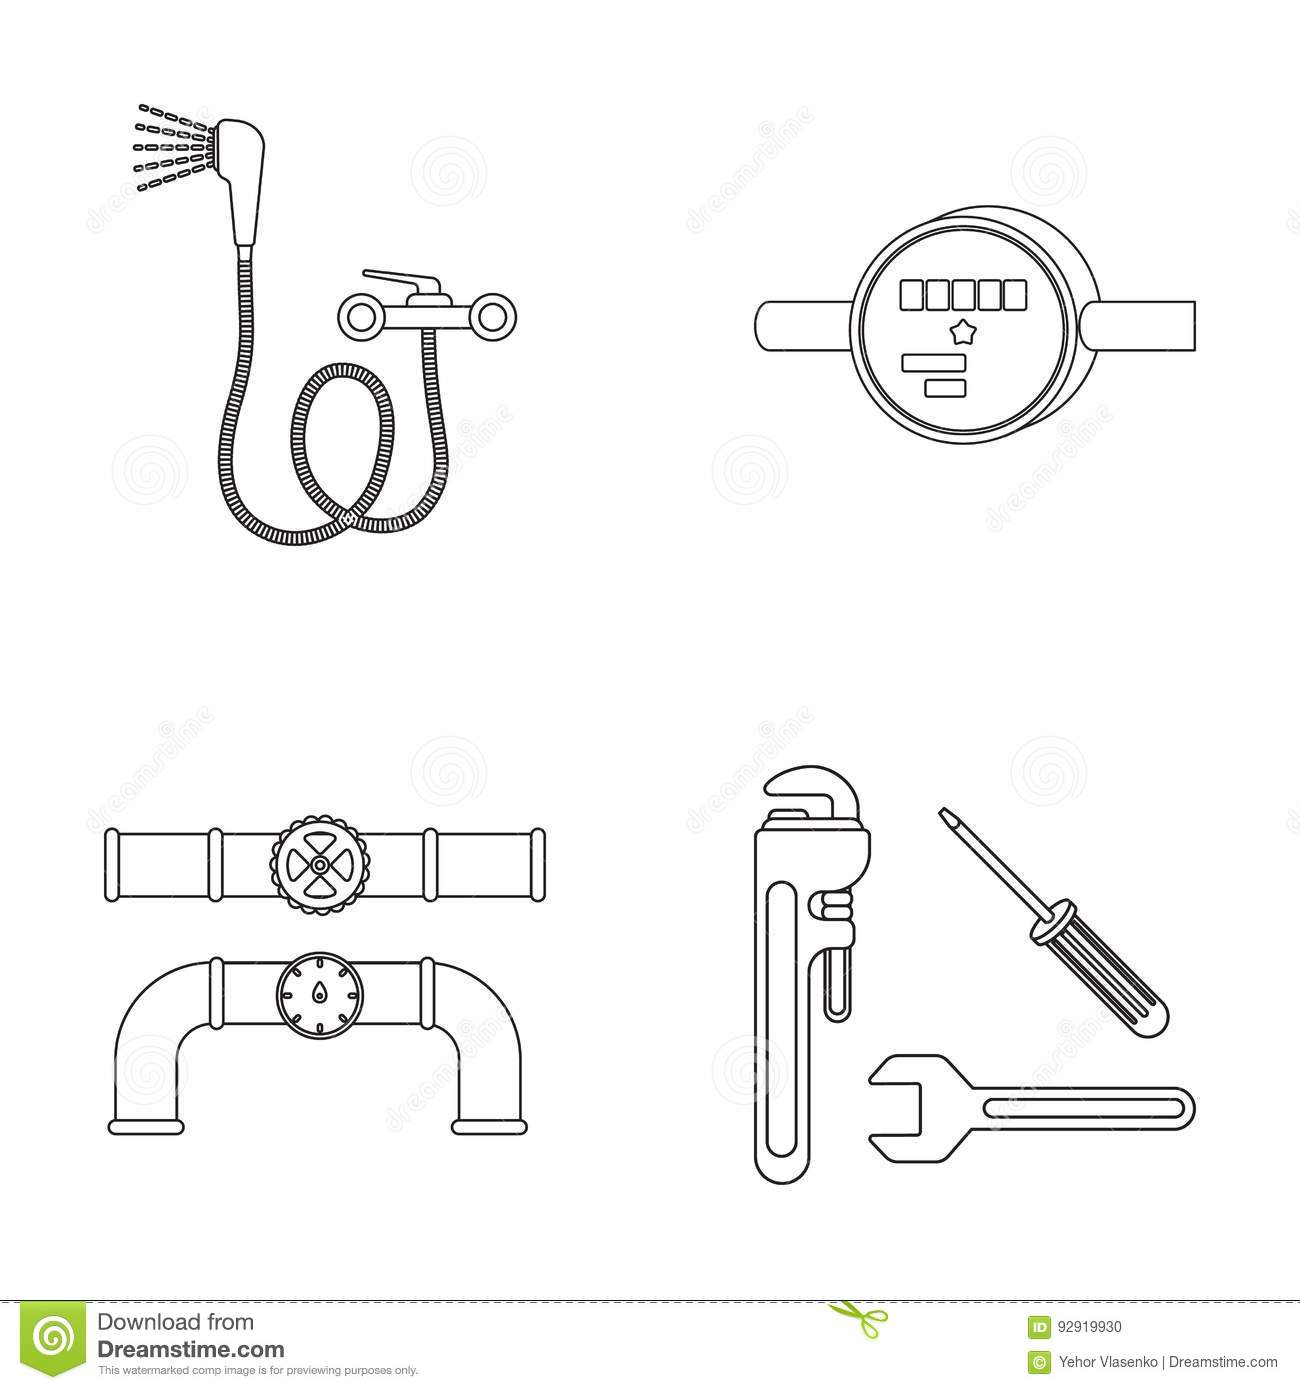 Lovely Water Faucet Vectorce Symbol For Meter Ideas Electrical